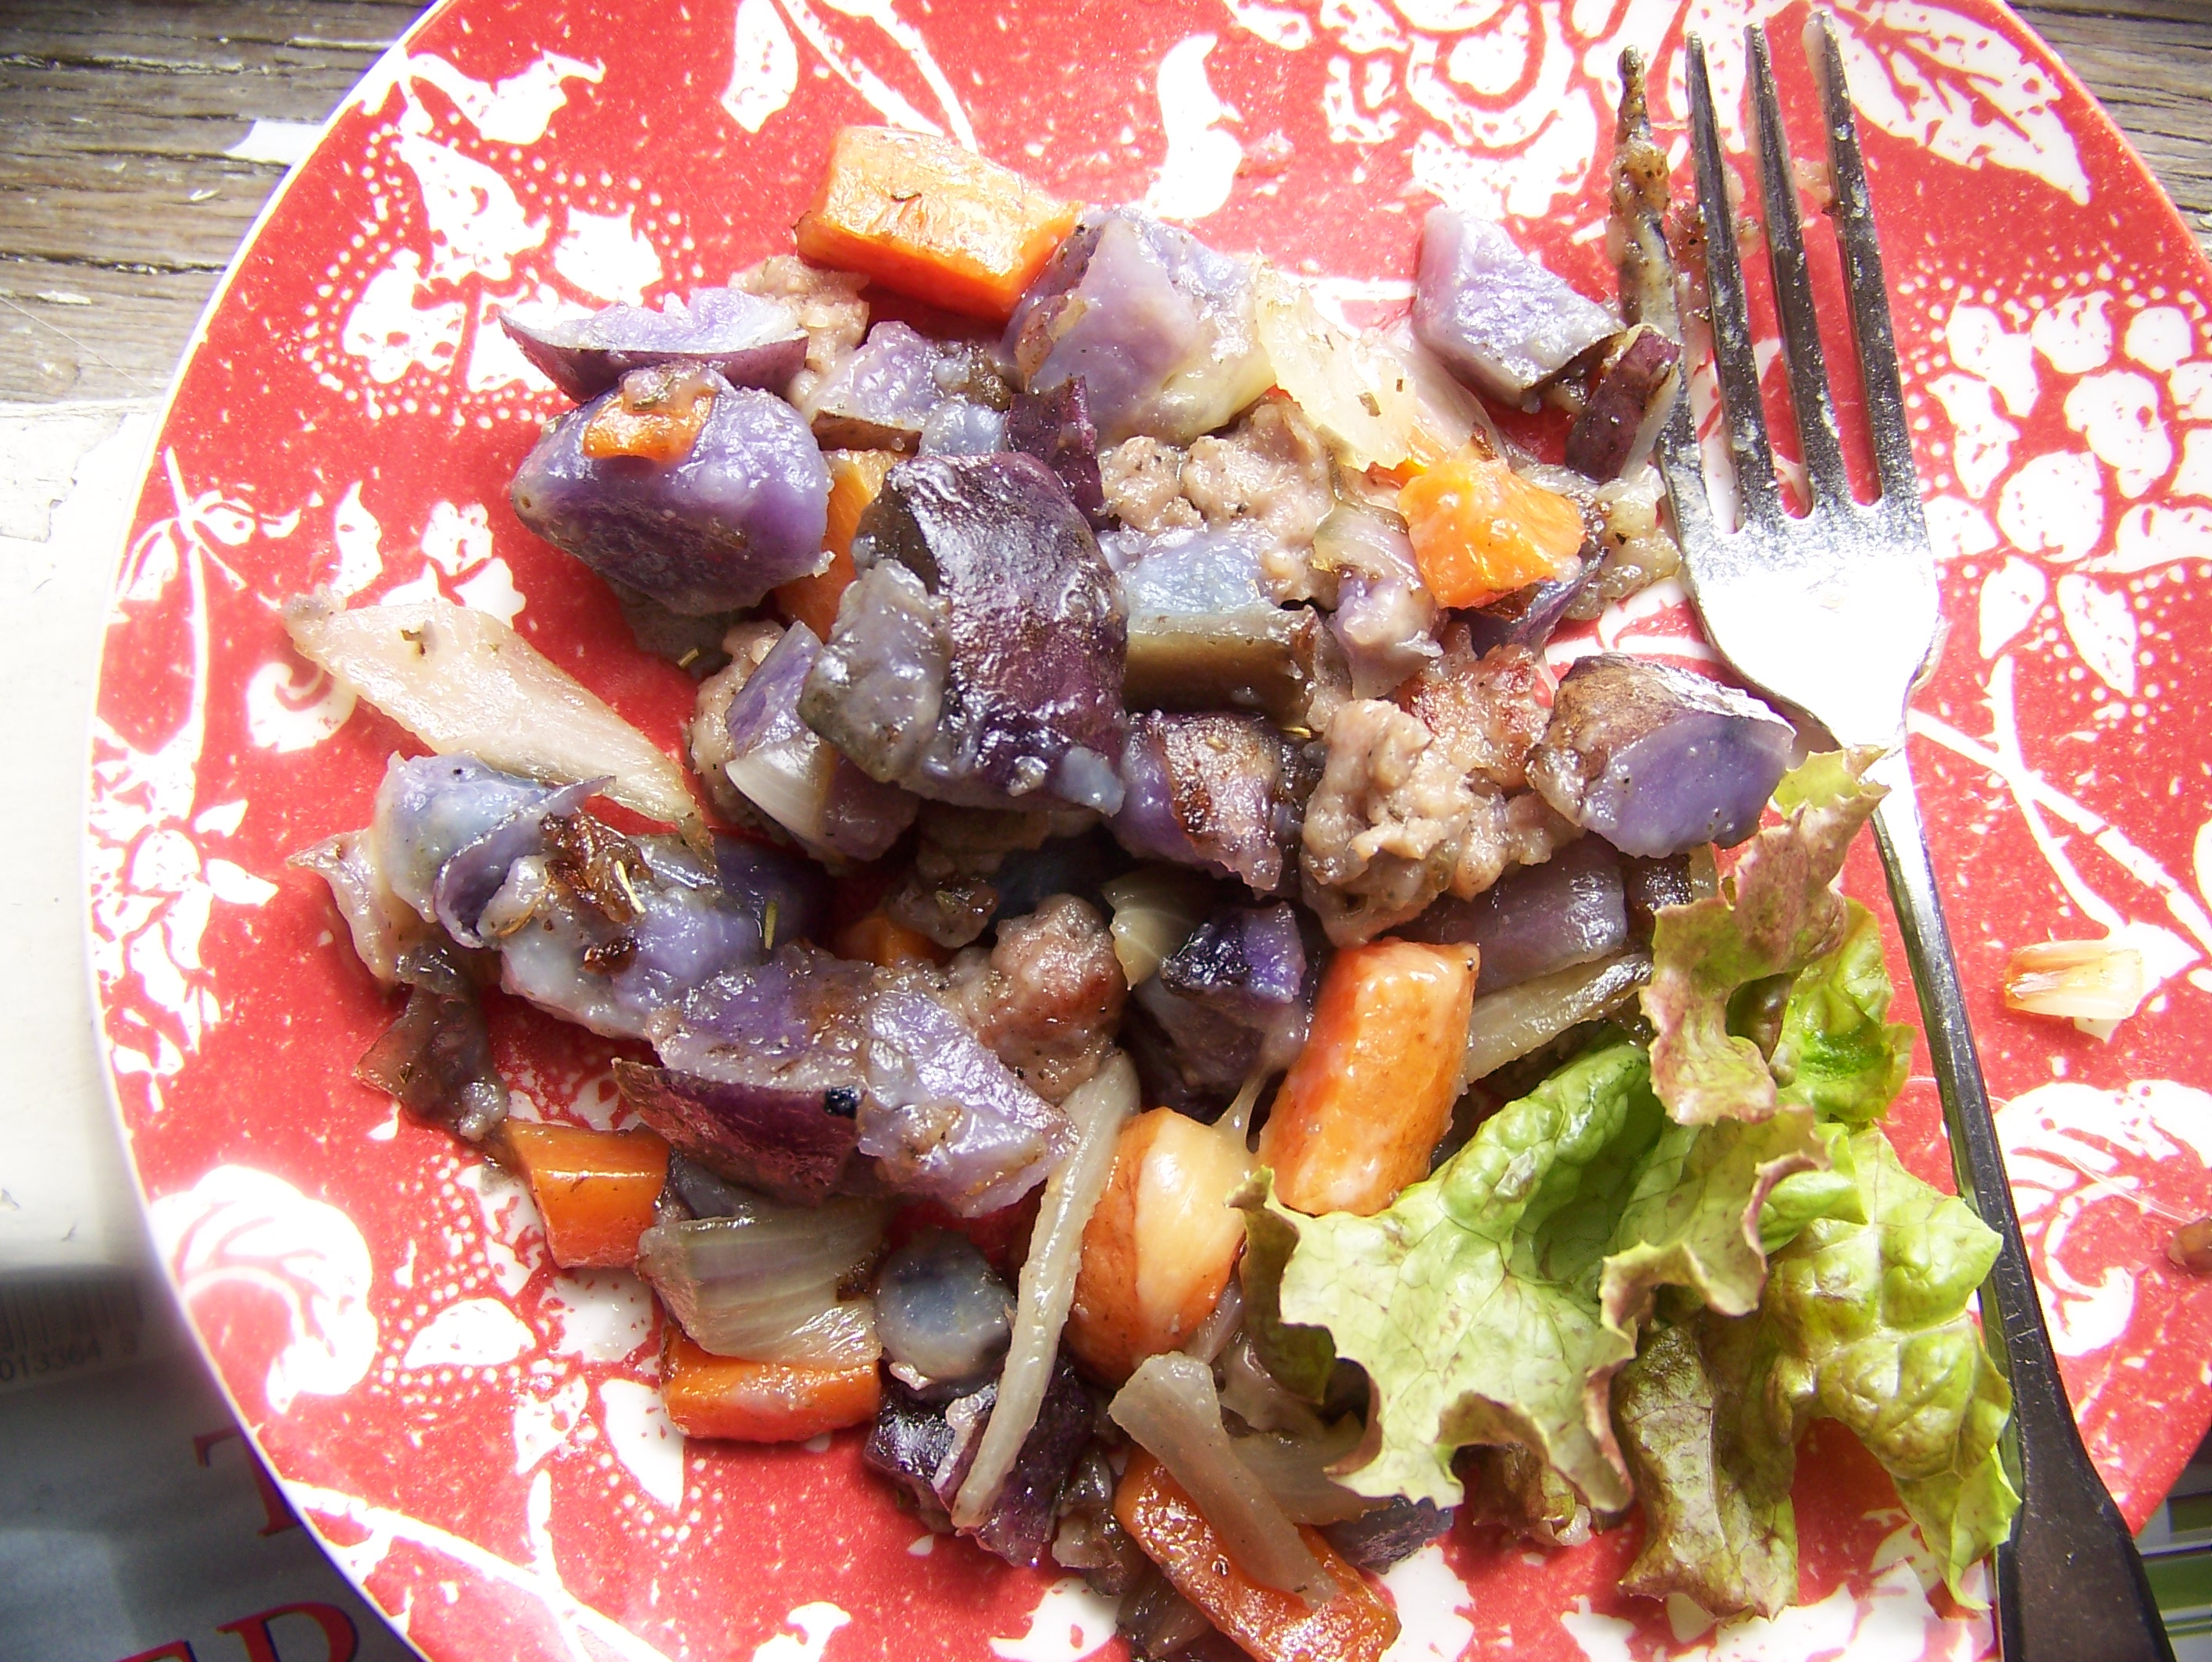 Sausage, carrots, onions, taters. garnished with a bit of lettuce.